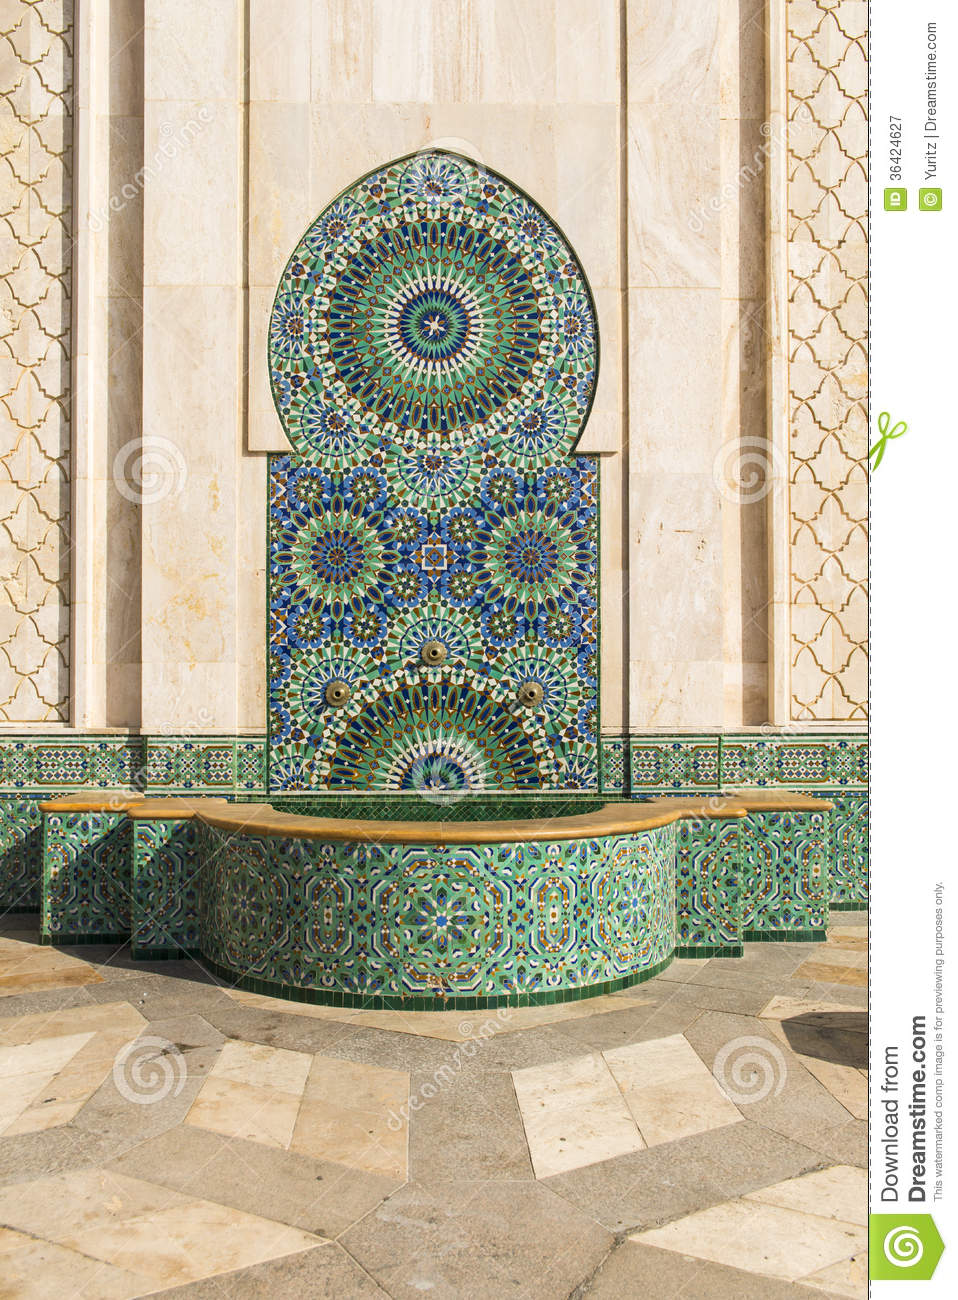 Fountain Of Hassan Ii Mosque Royalty Free Stock